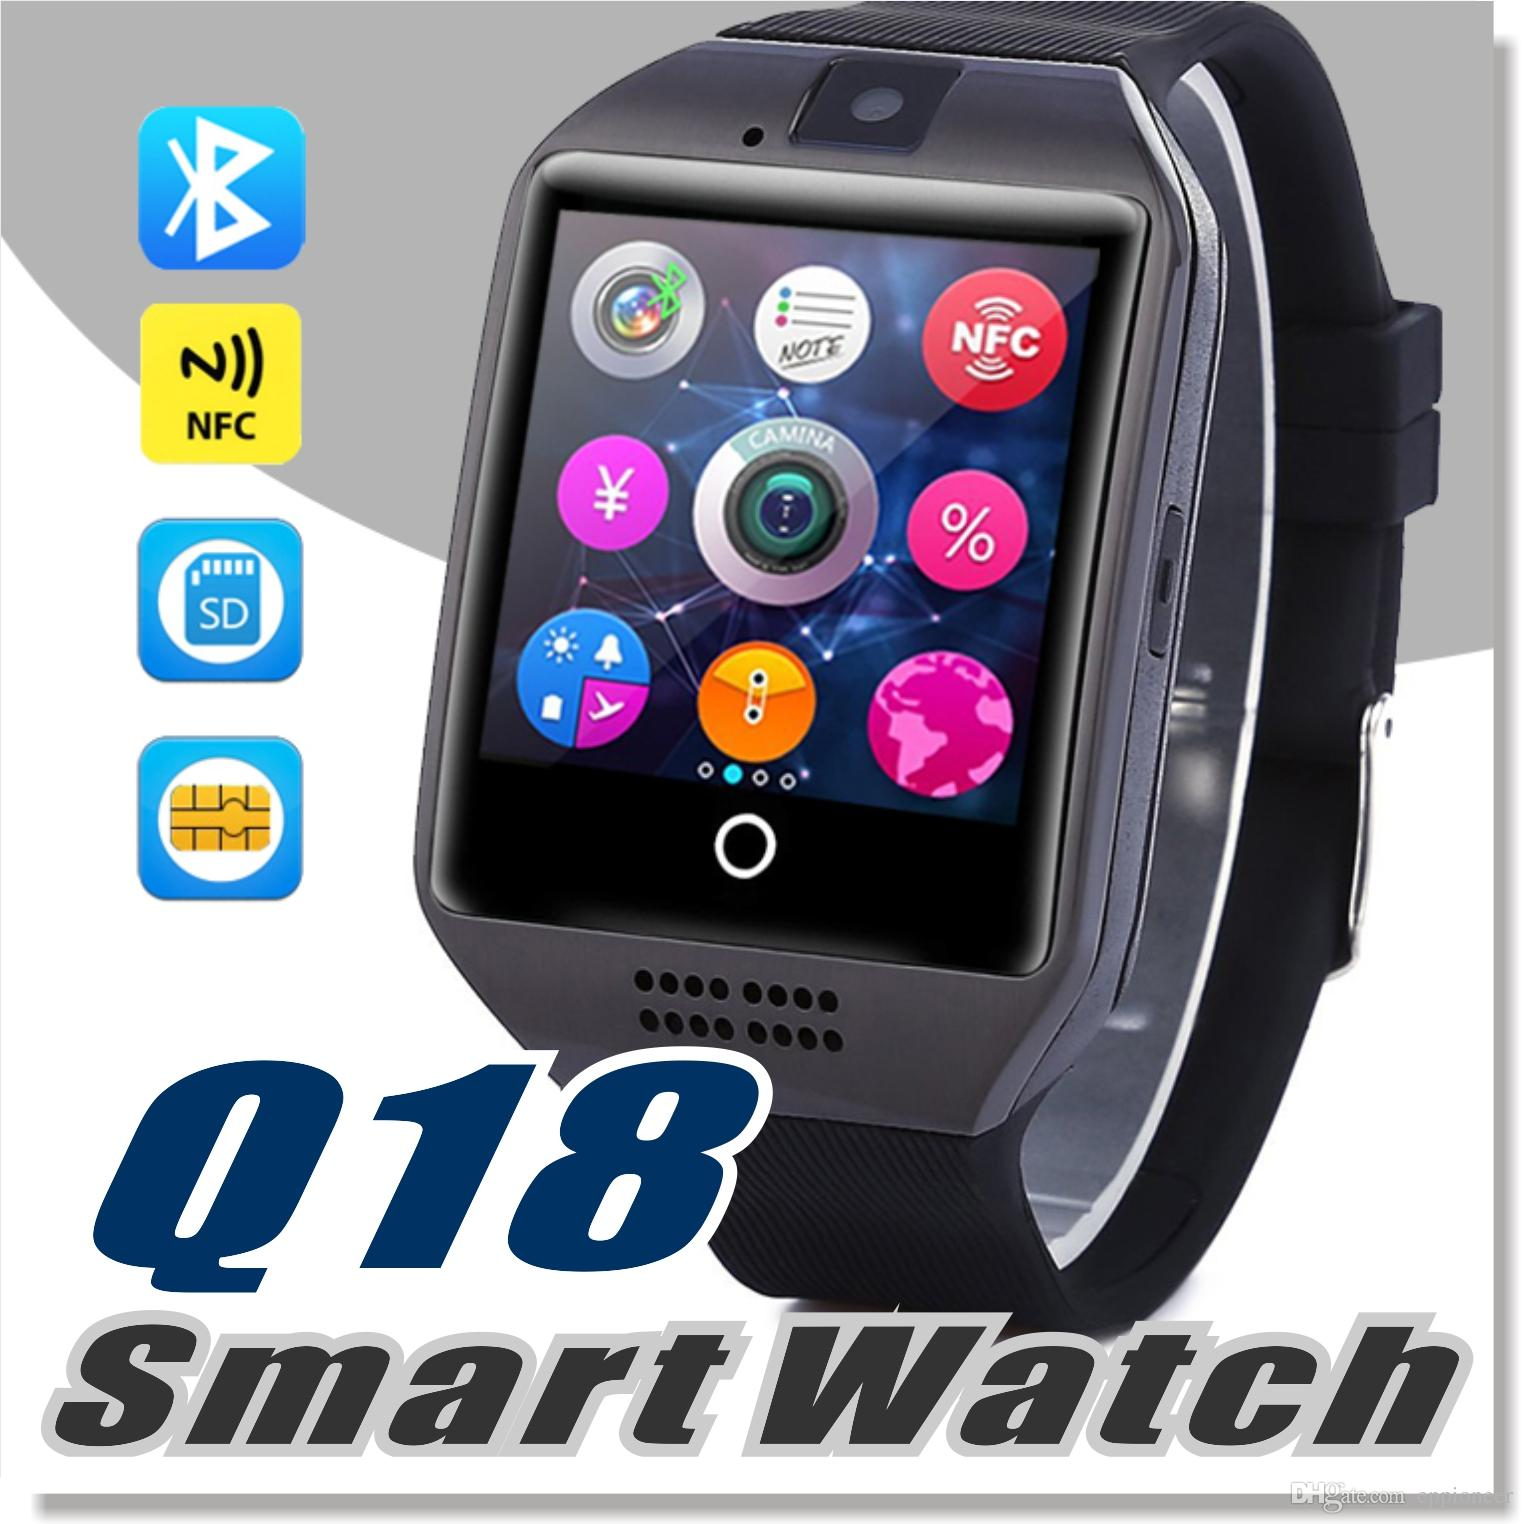 pm sale ecuberetail watc plus malaysia best smartwatch smart ma in end phone i mobile htm watches a watch